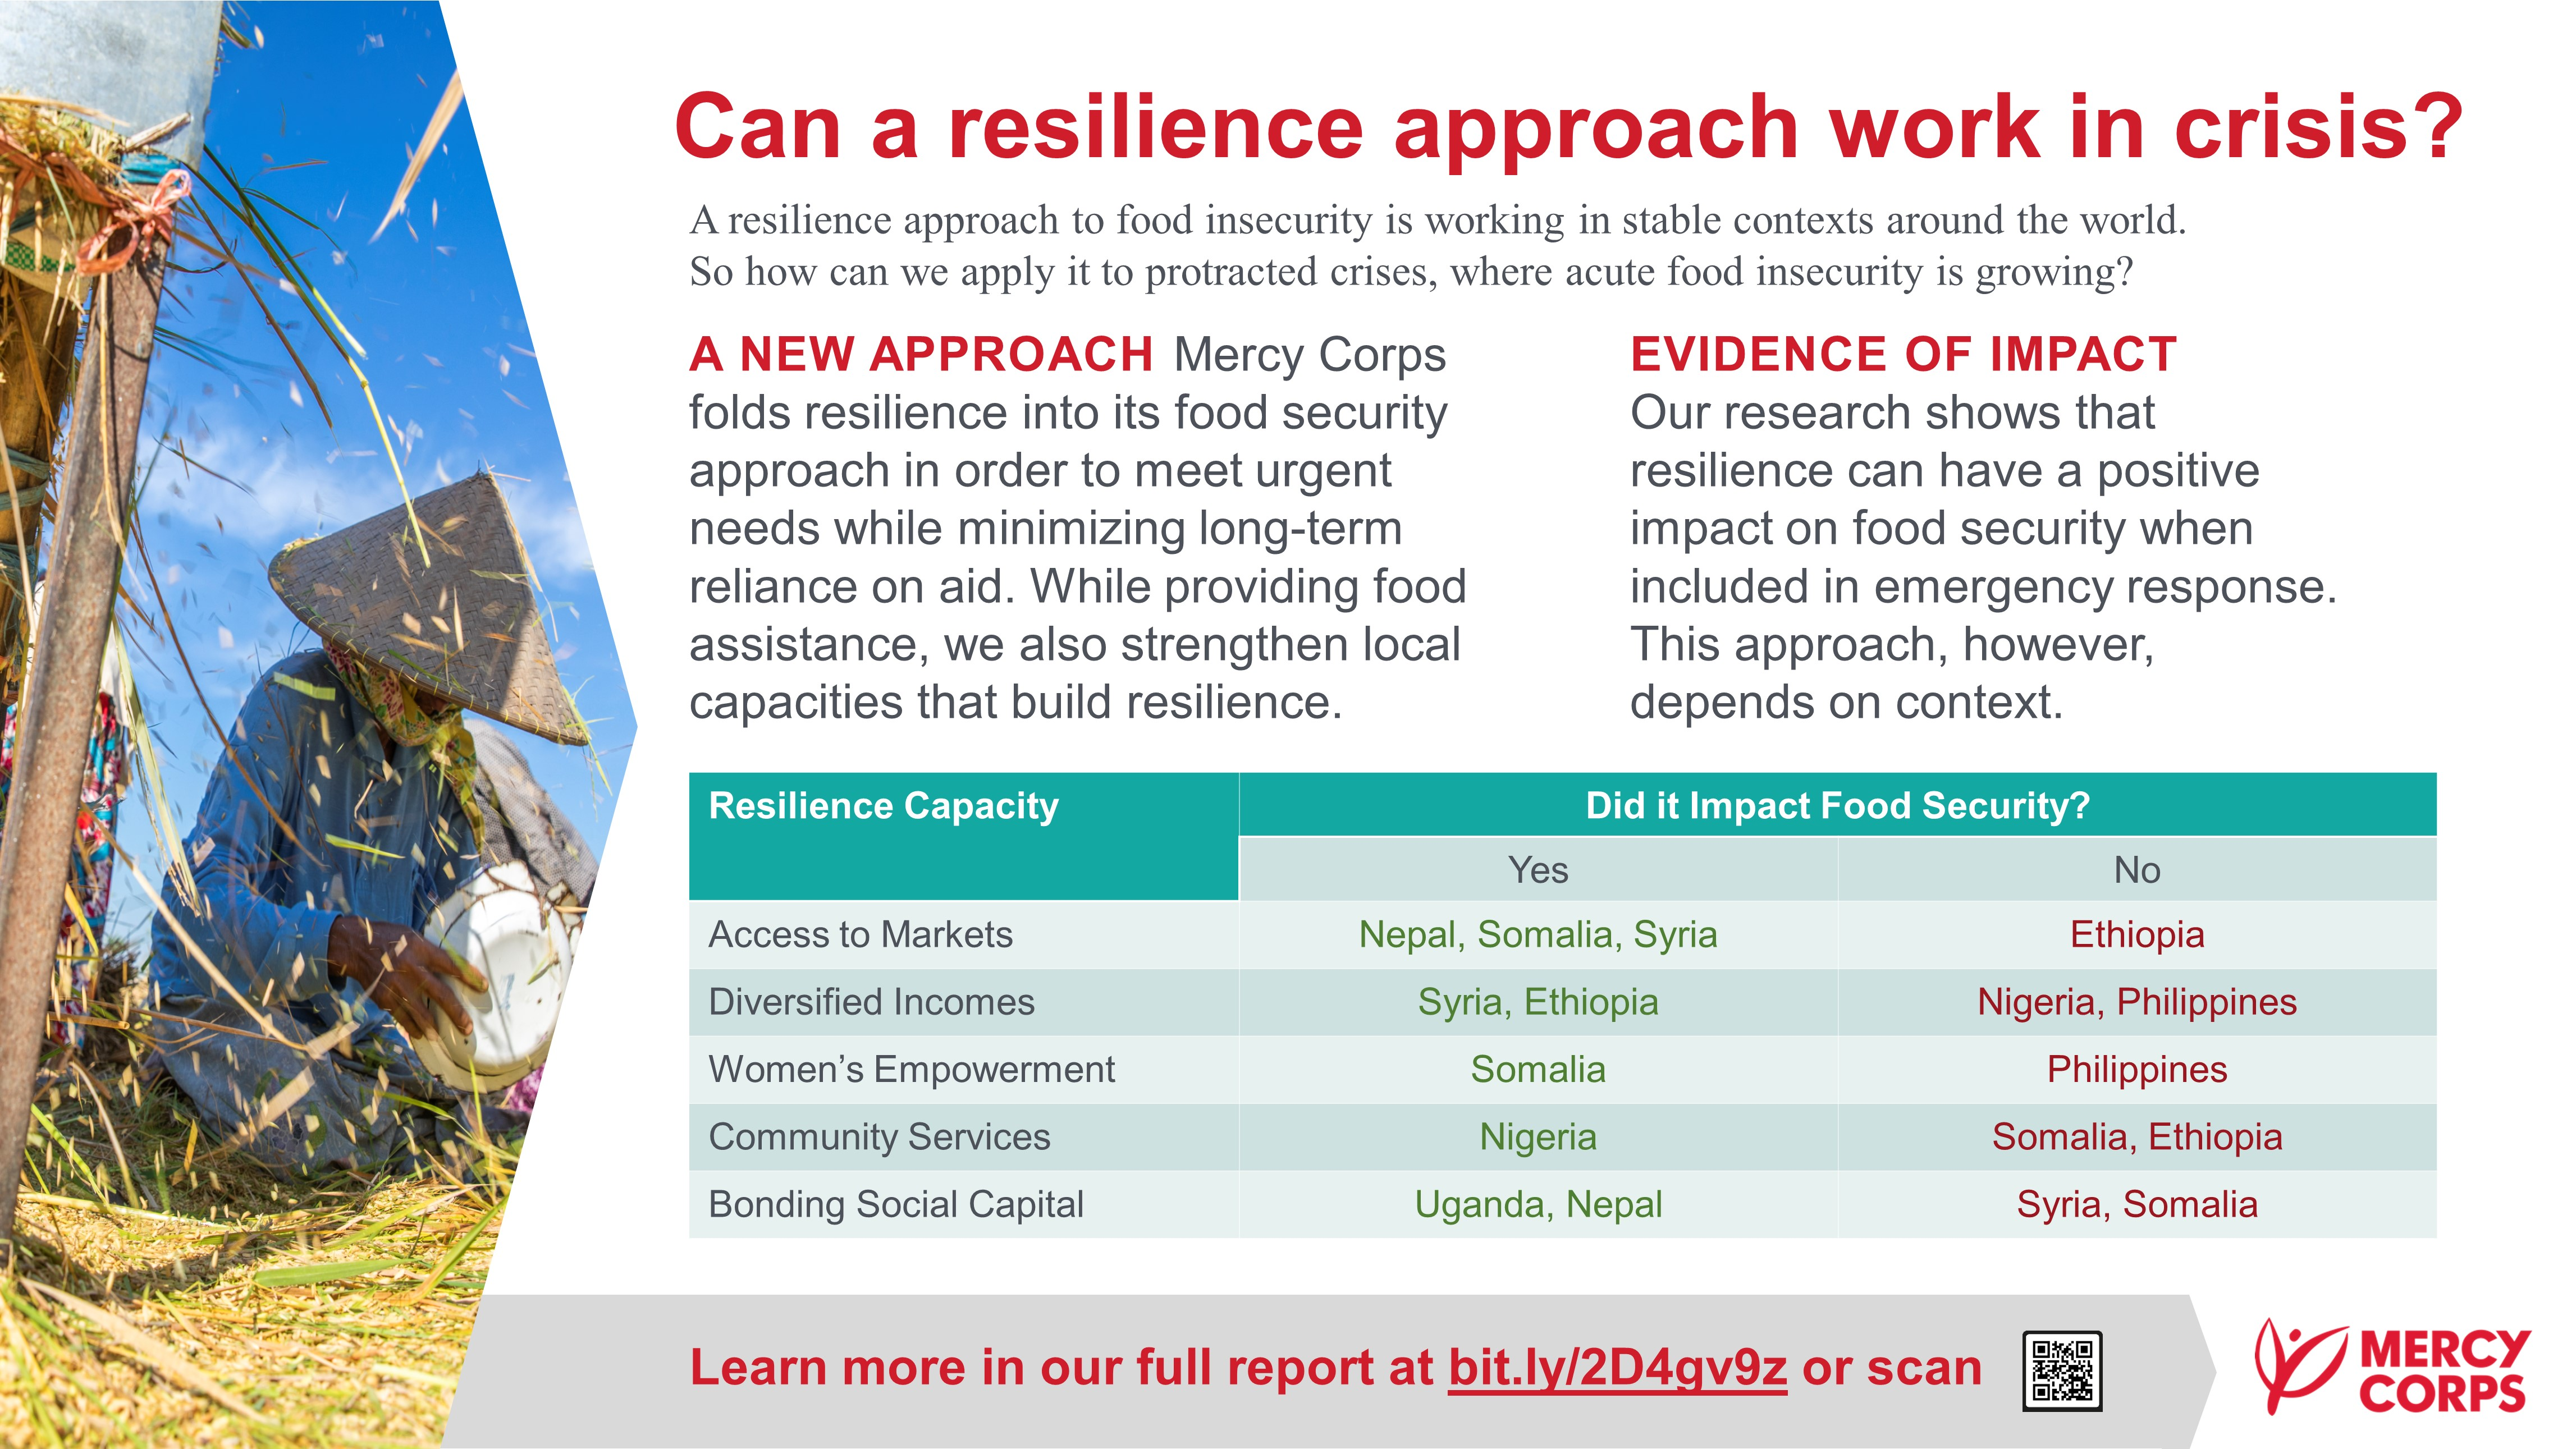 Can a Resilience Approach Work in Crisis?